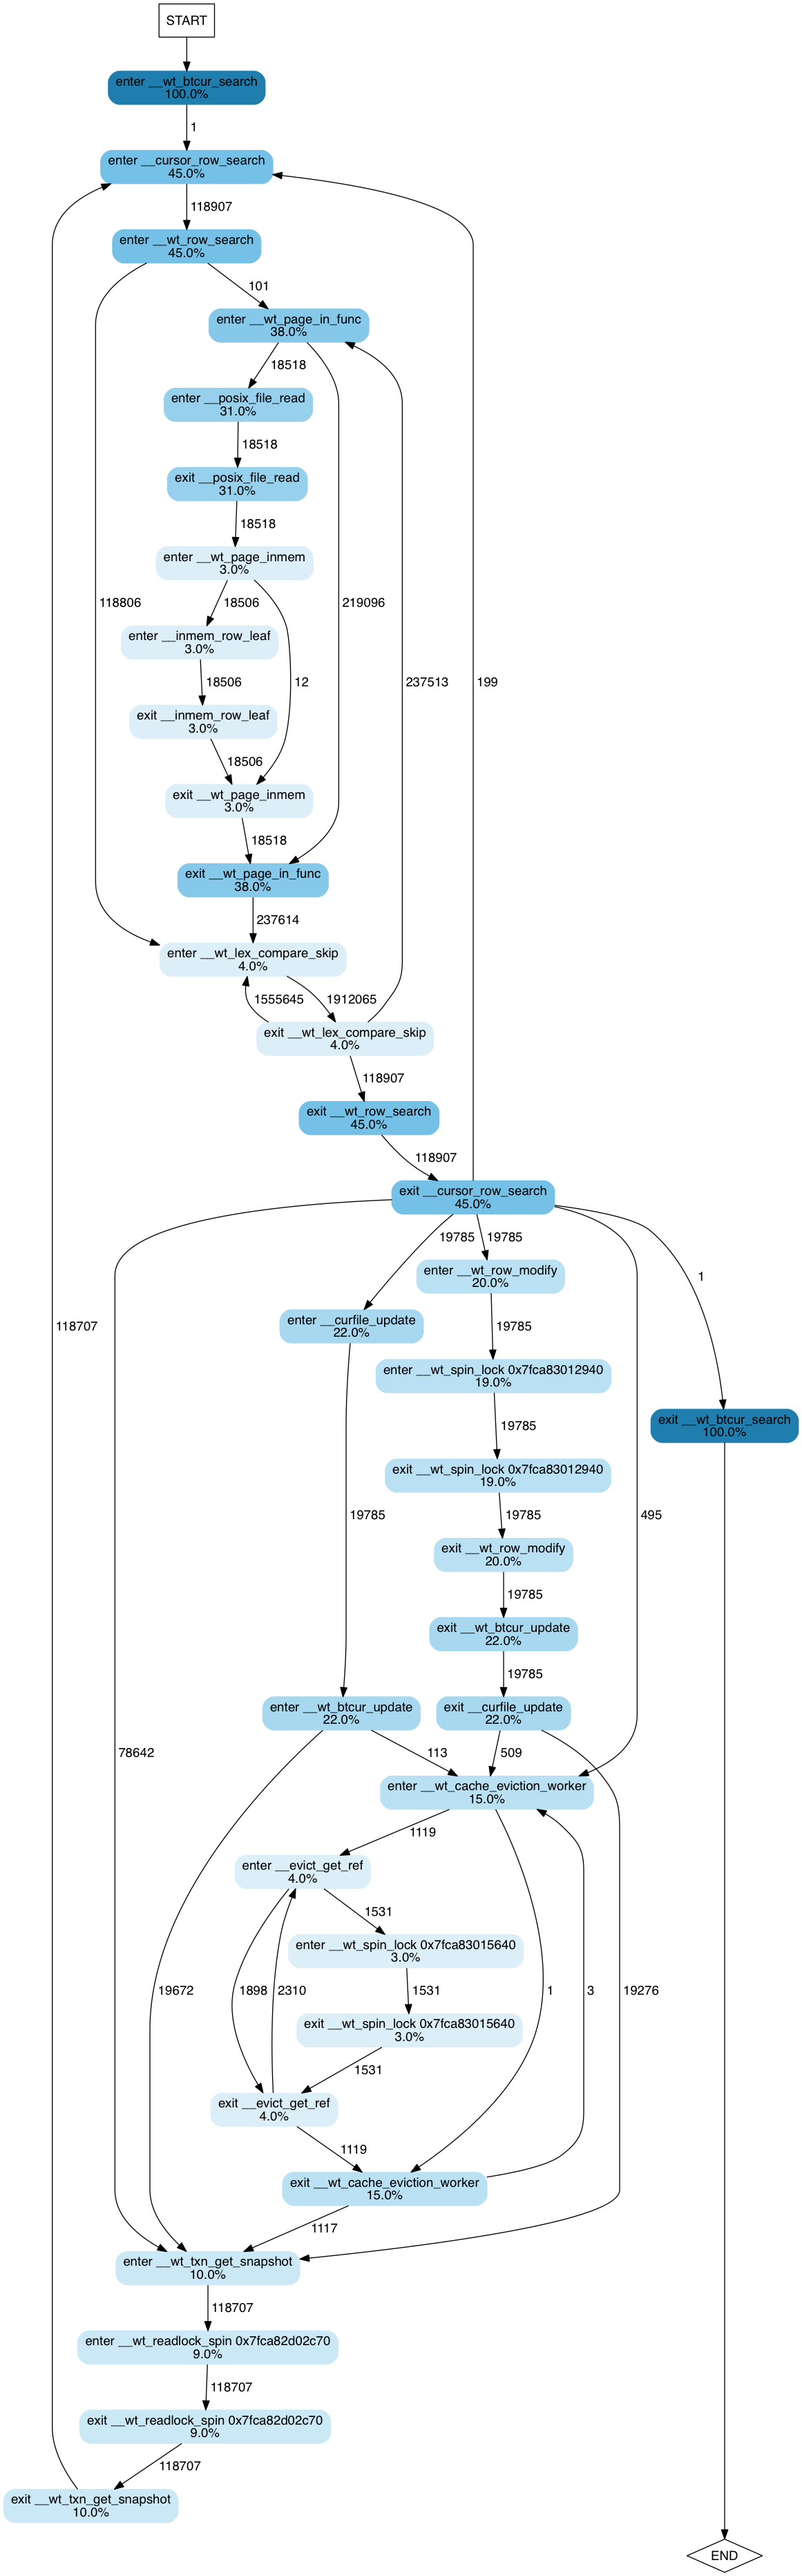 WiredTiger execution flow diagram